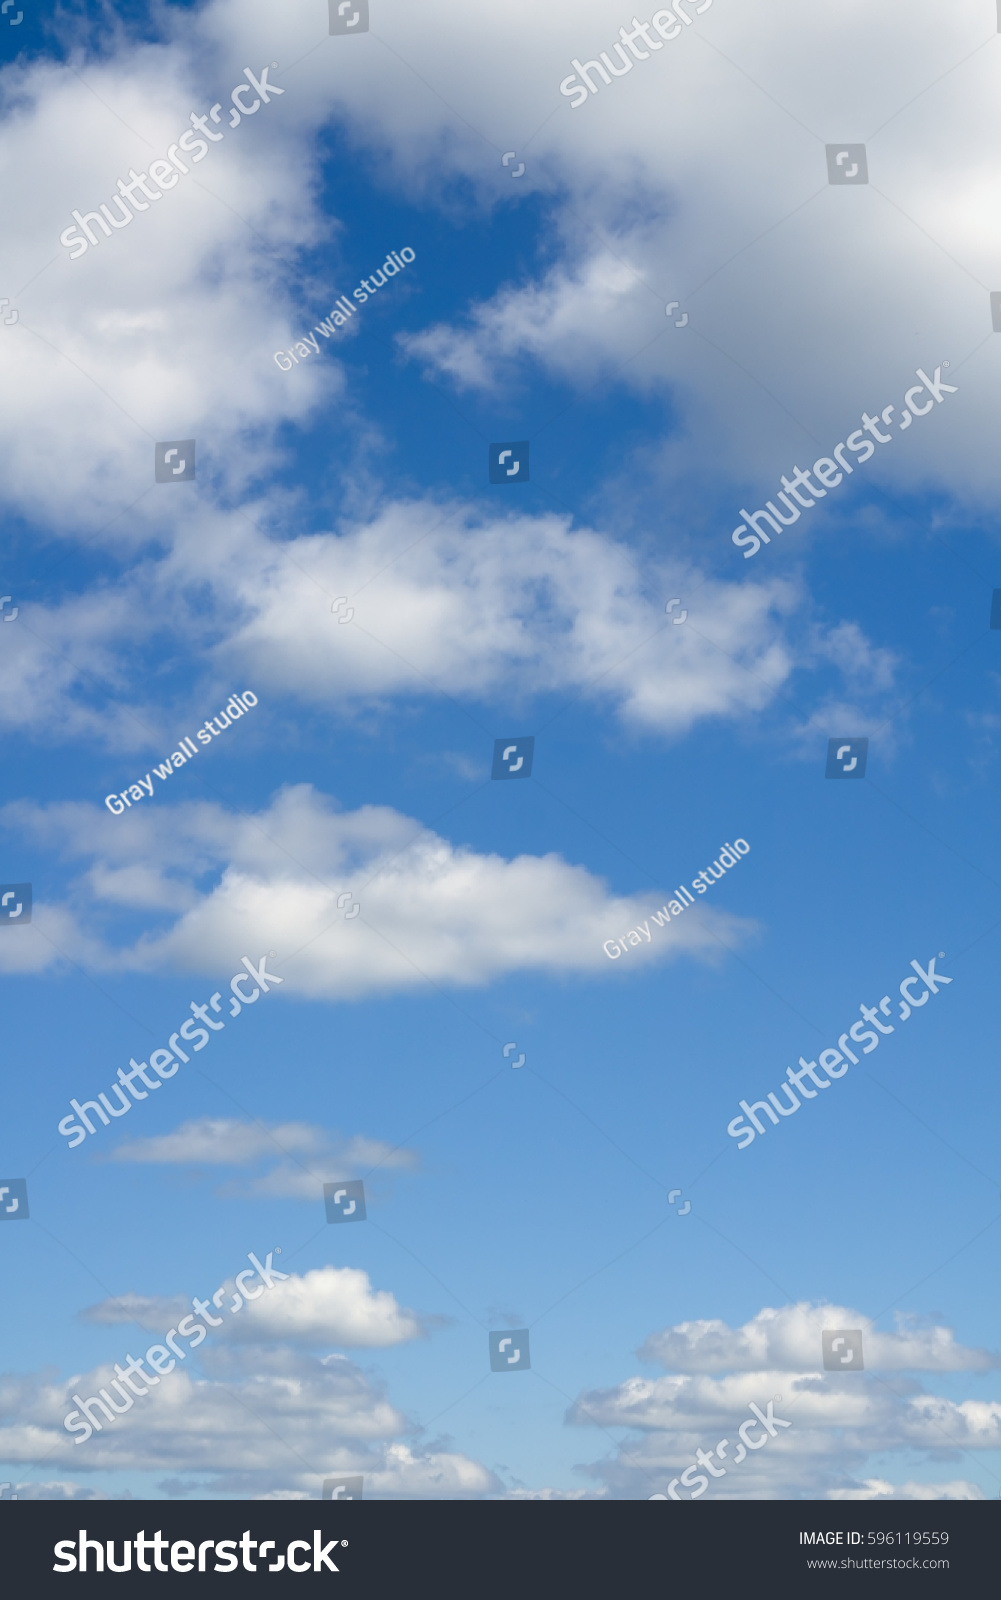 Blue Sky Clouds Over Horizon Stock Photo 596119559 ...